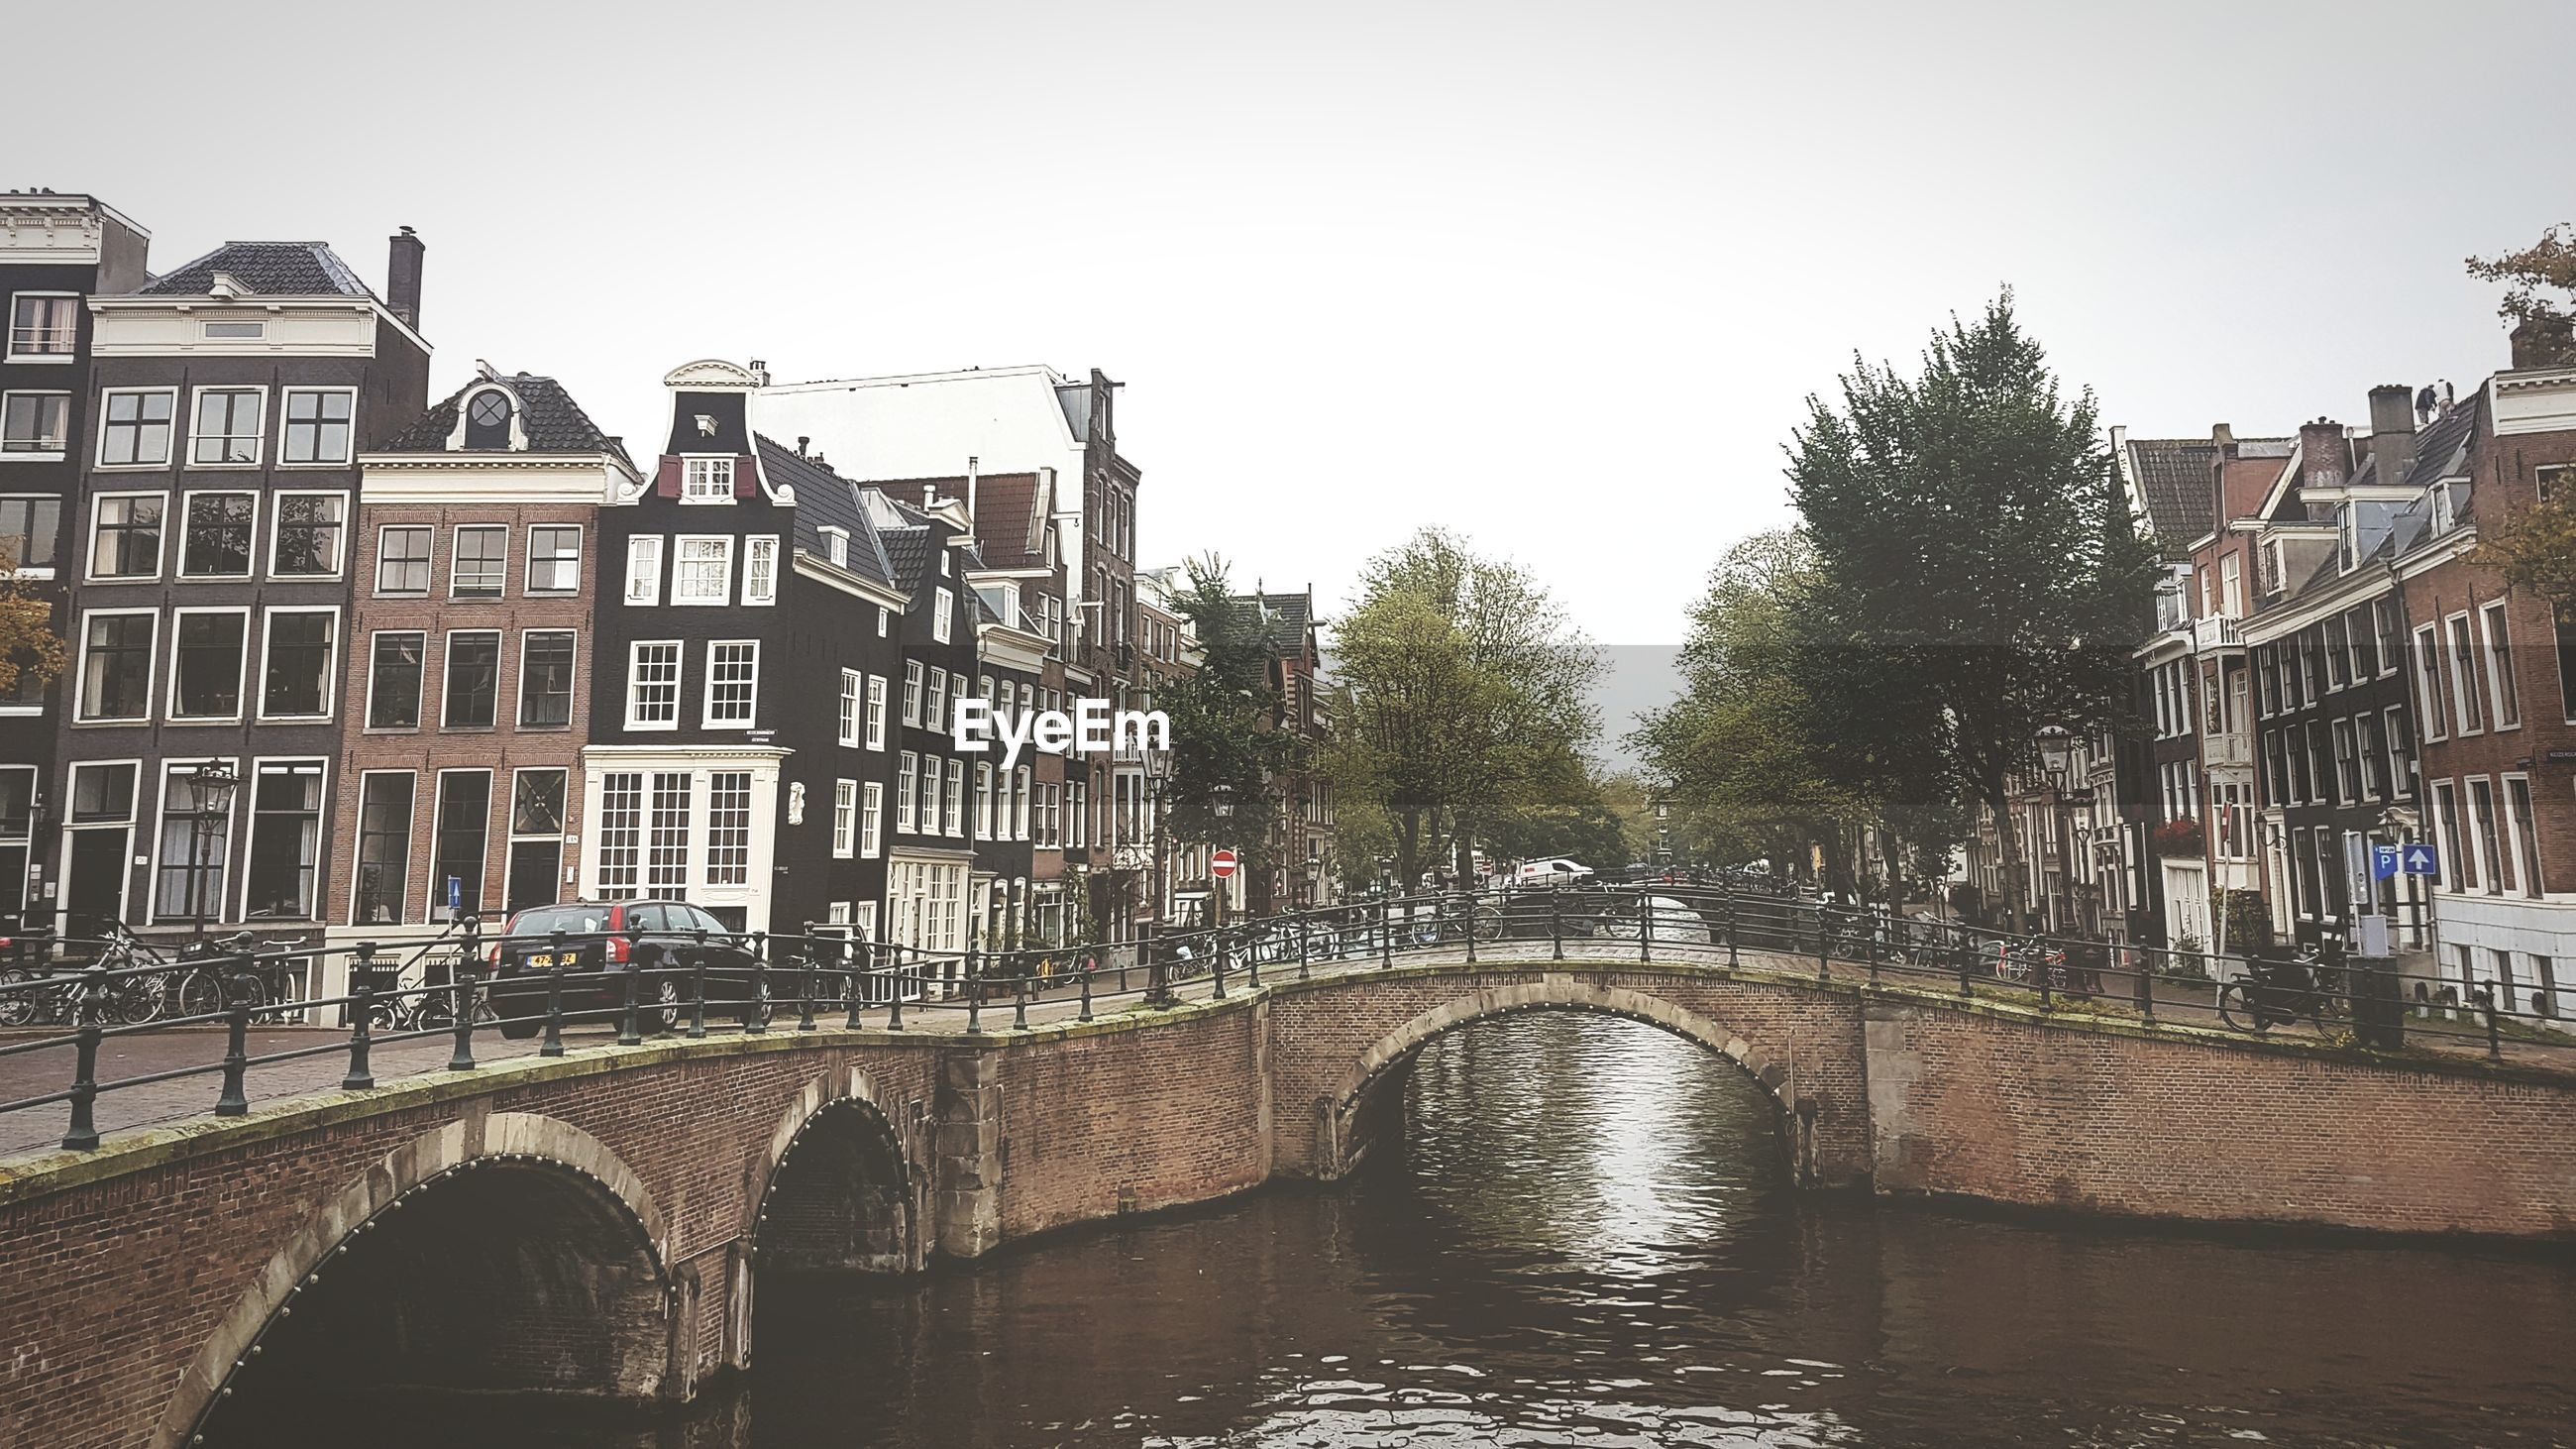 Bridge over canal in city